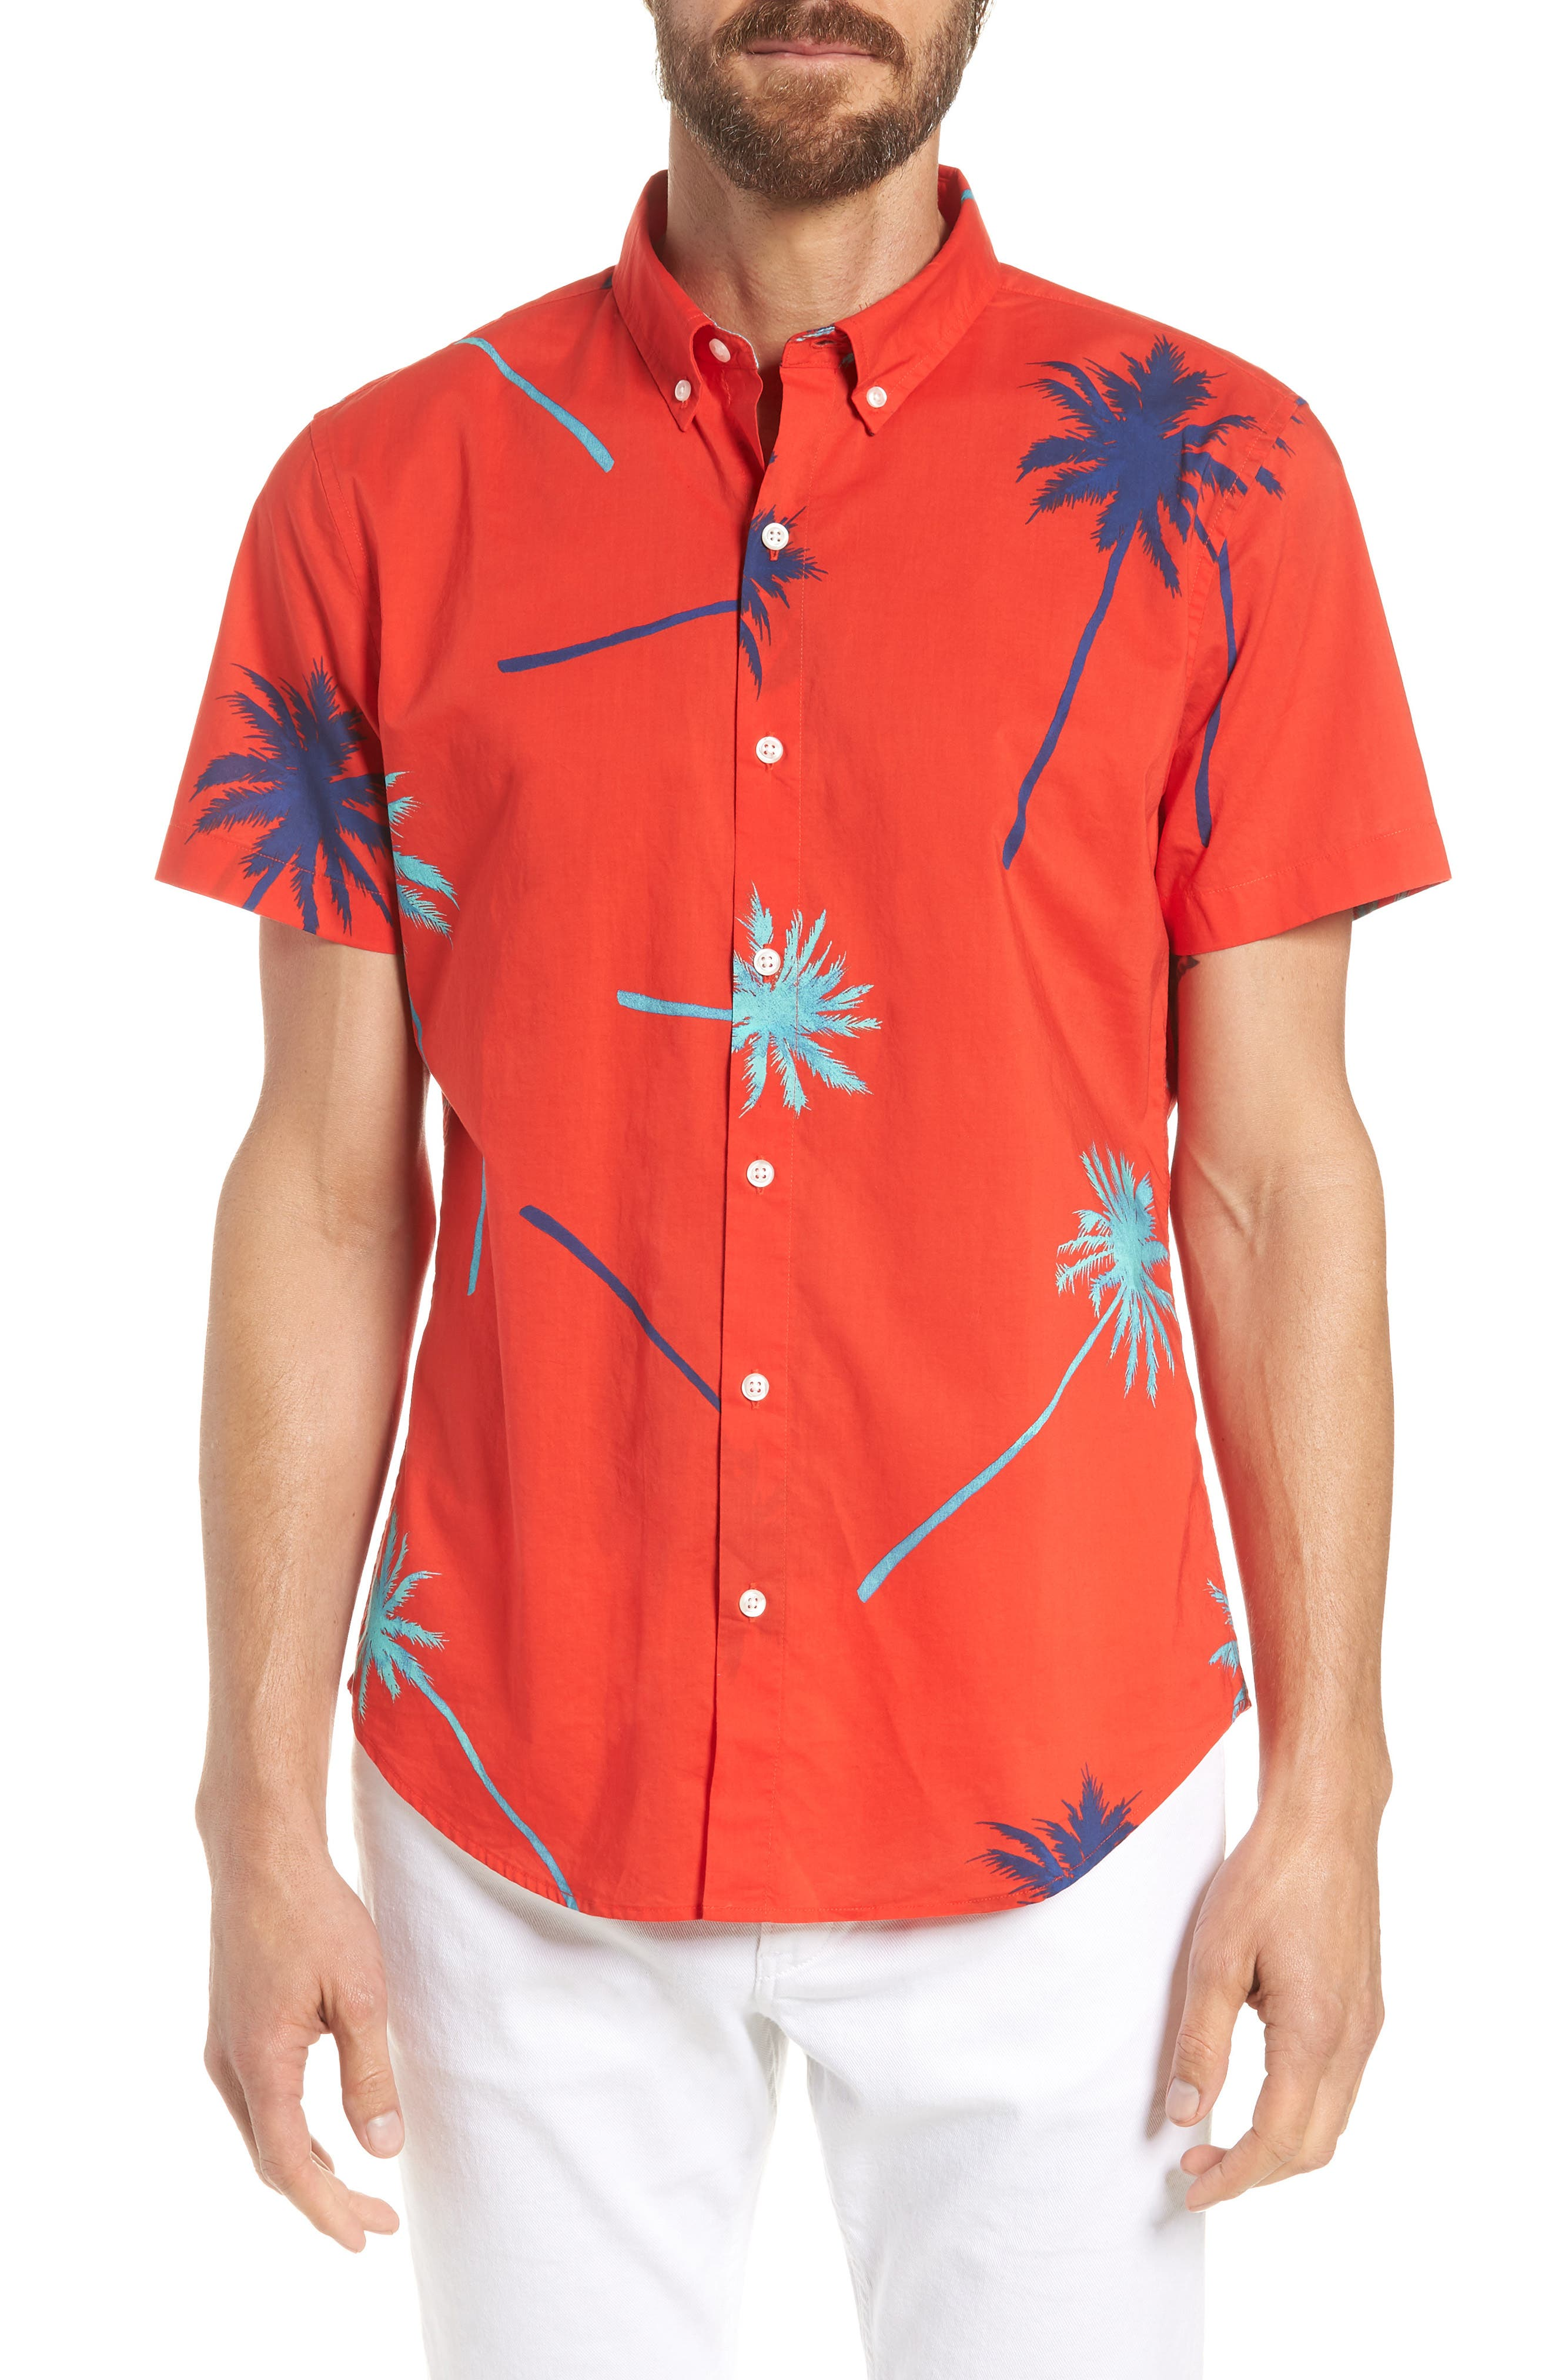 Riviera Slim Fit Palm Print Sport Shirt,                         Main,                         color, Palm Tree View - Goji Berry